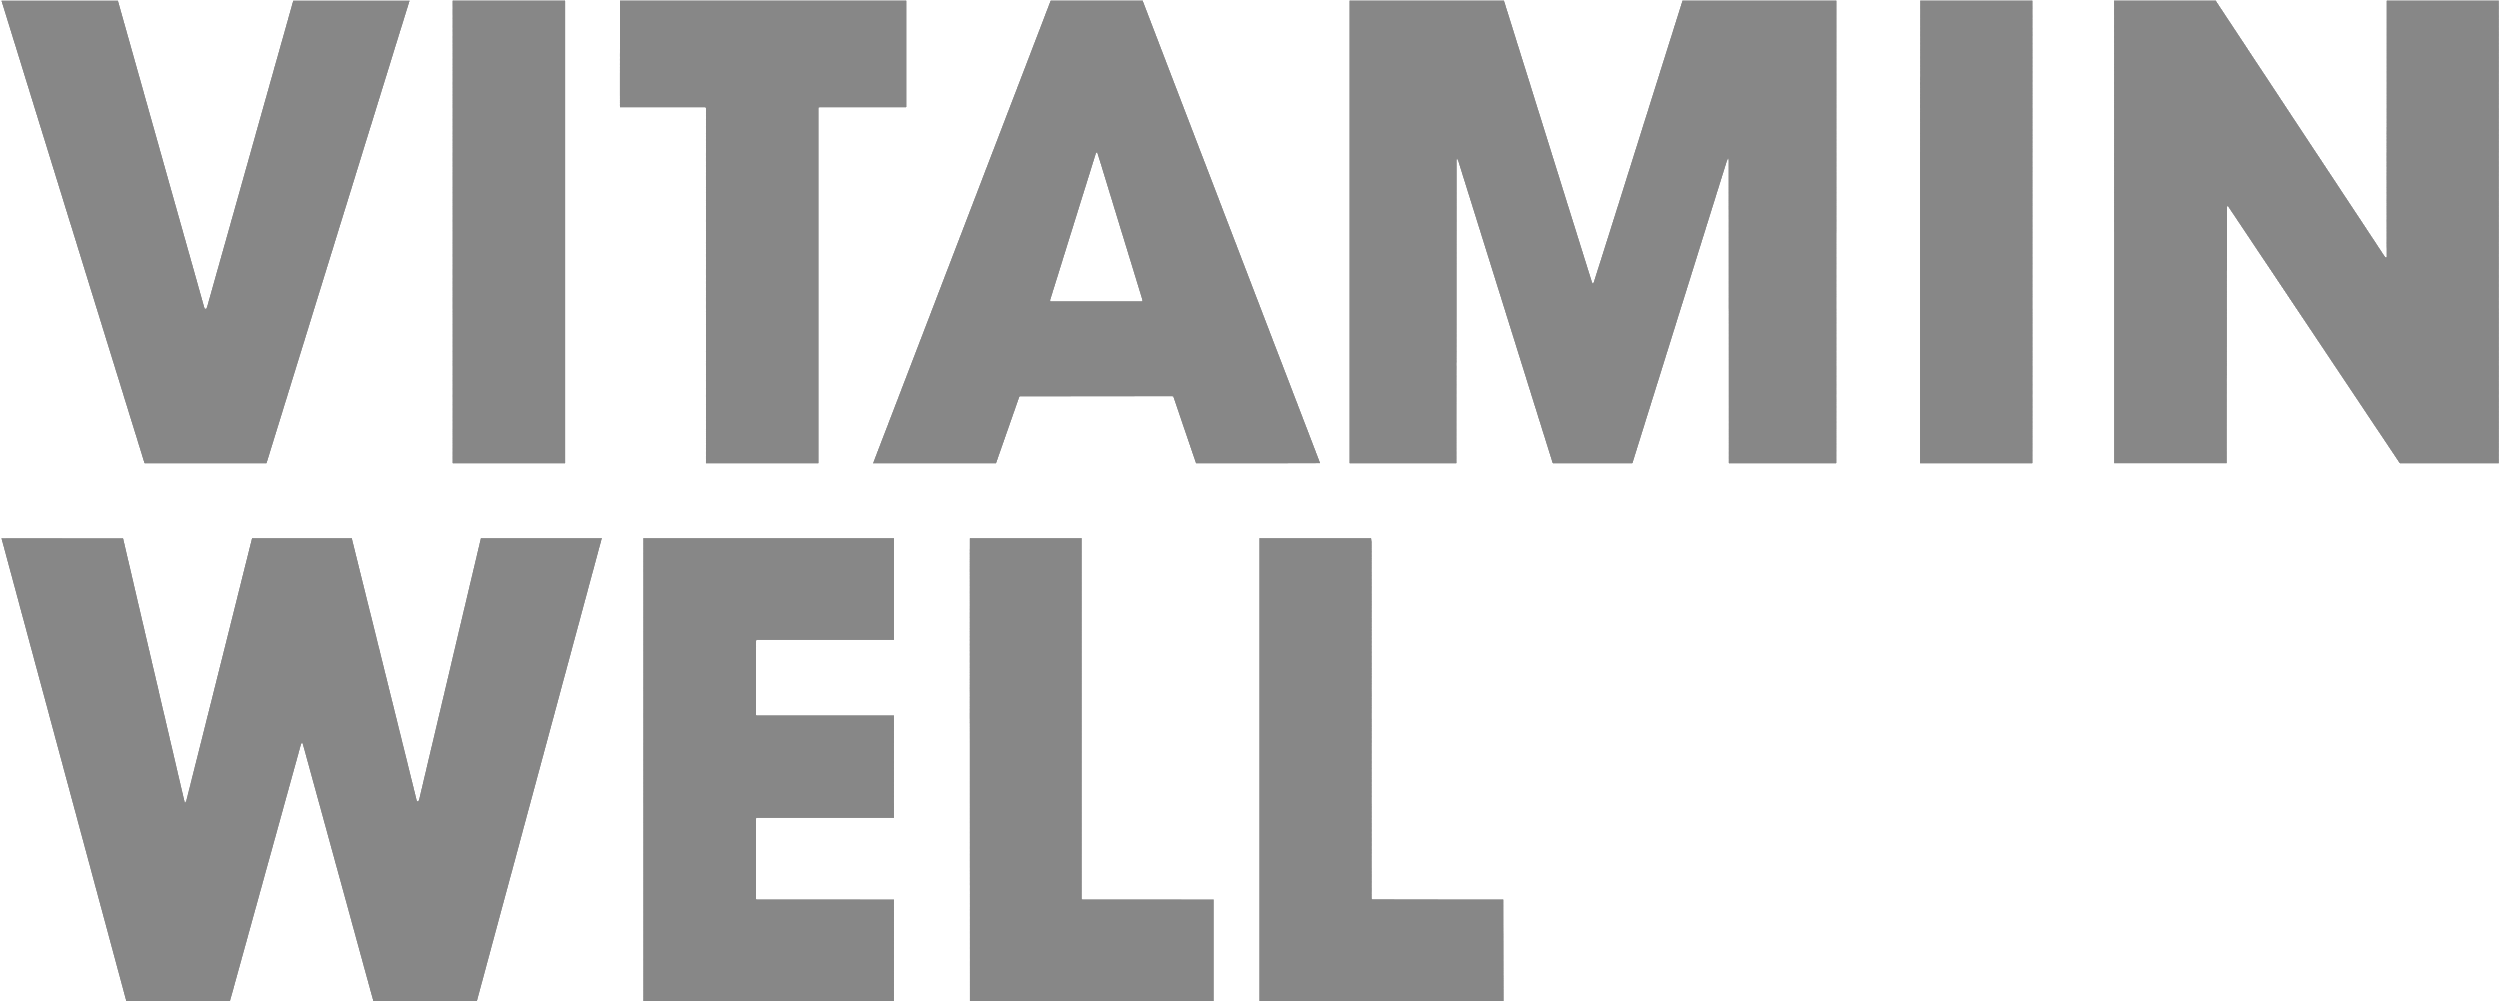 Vitamin_Well_logo.png